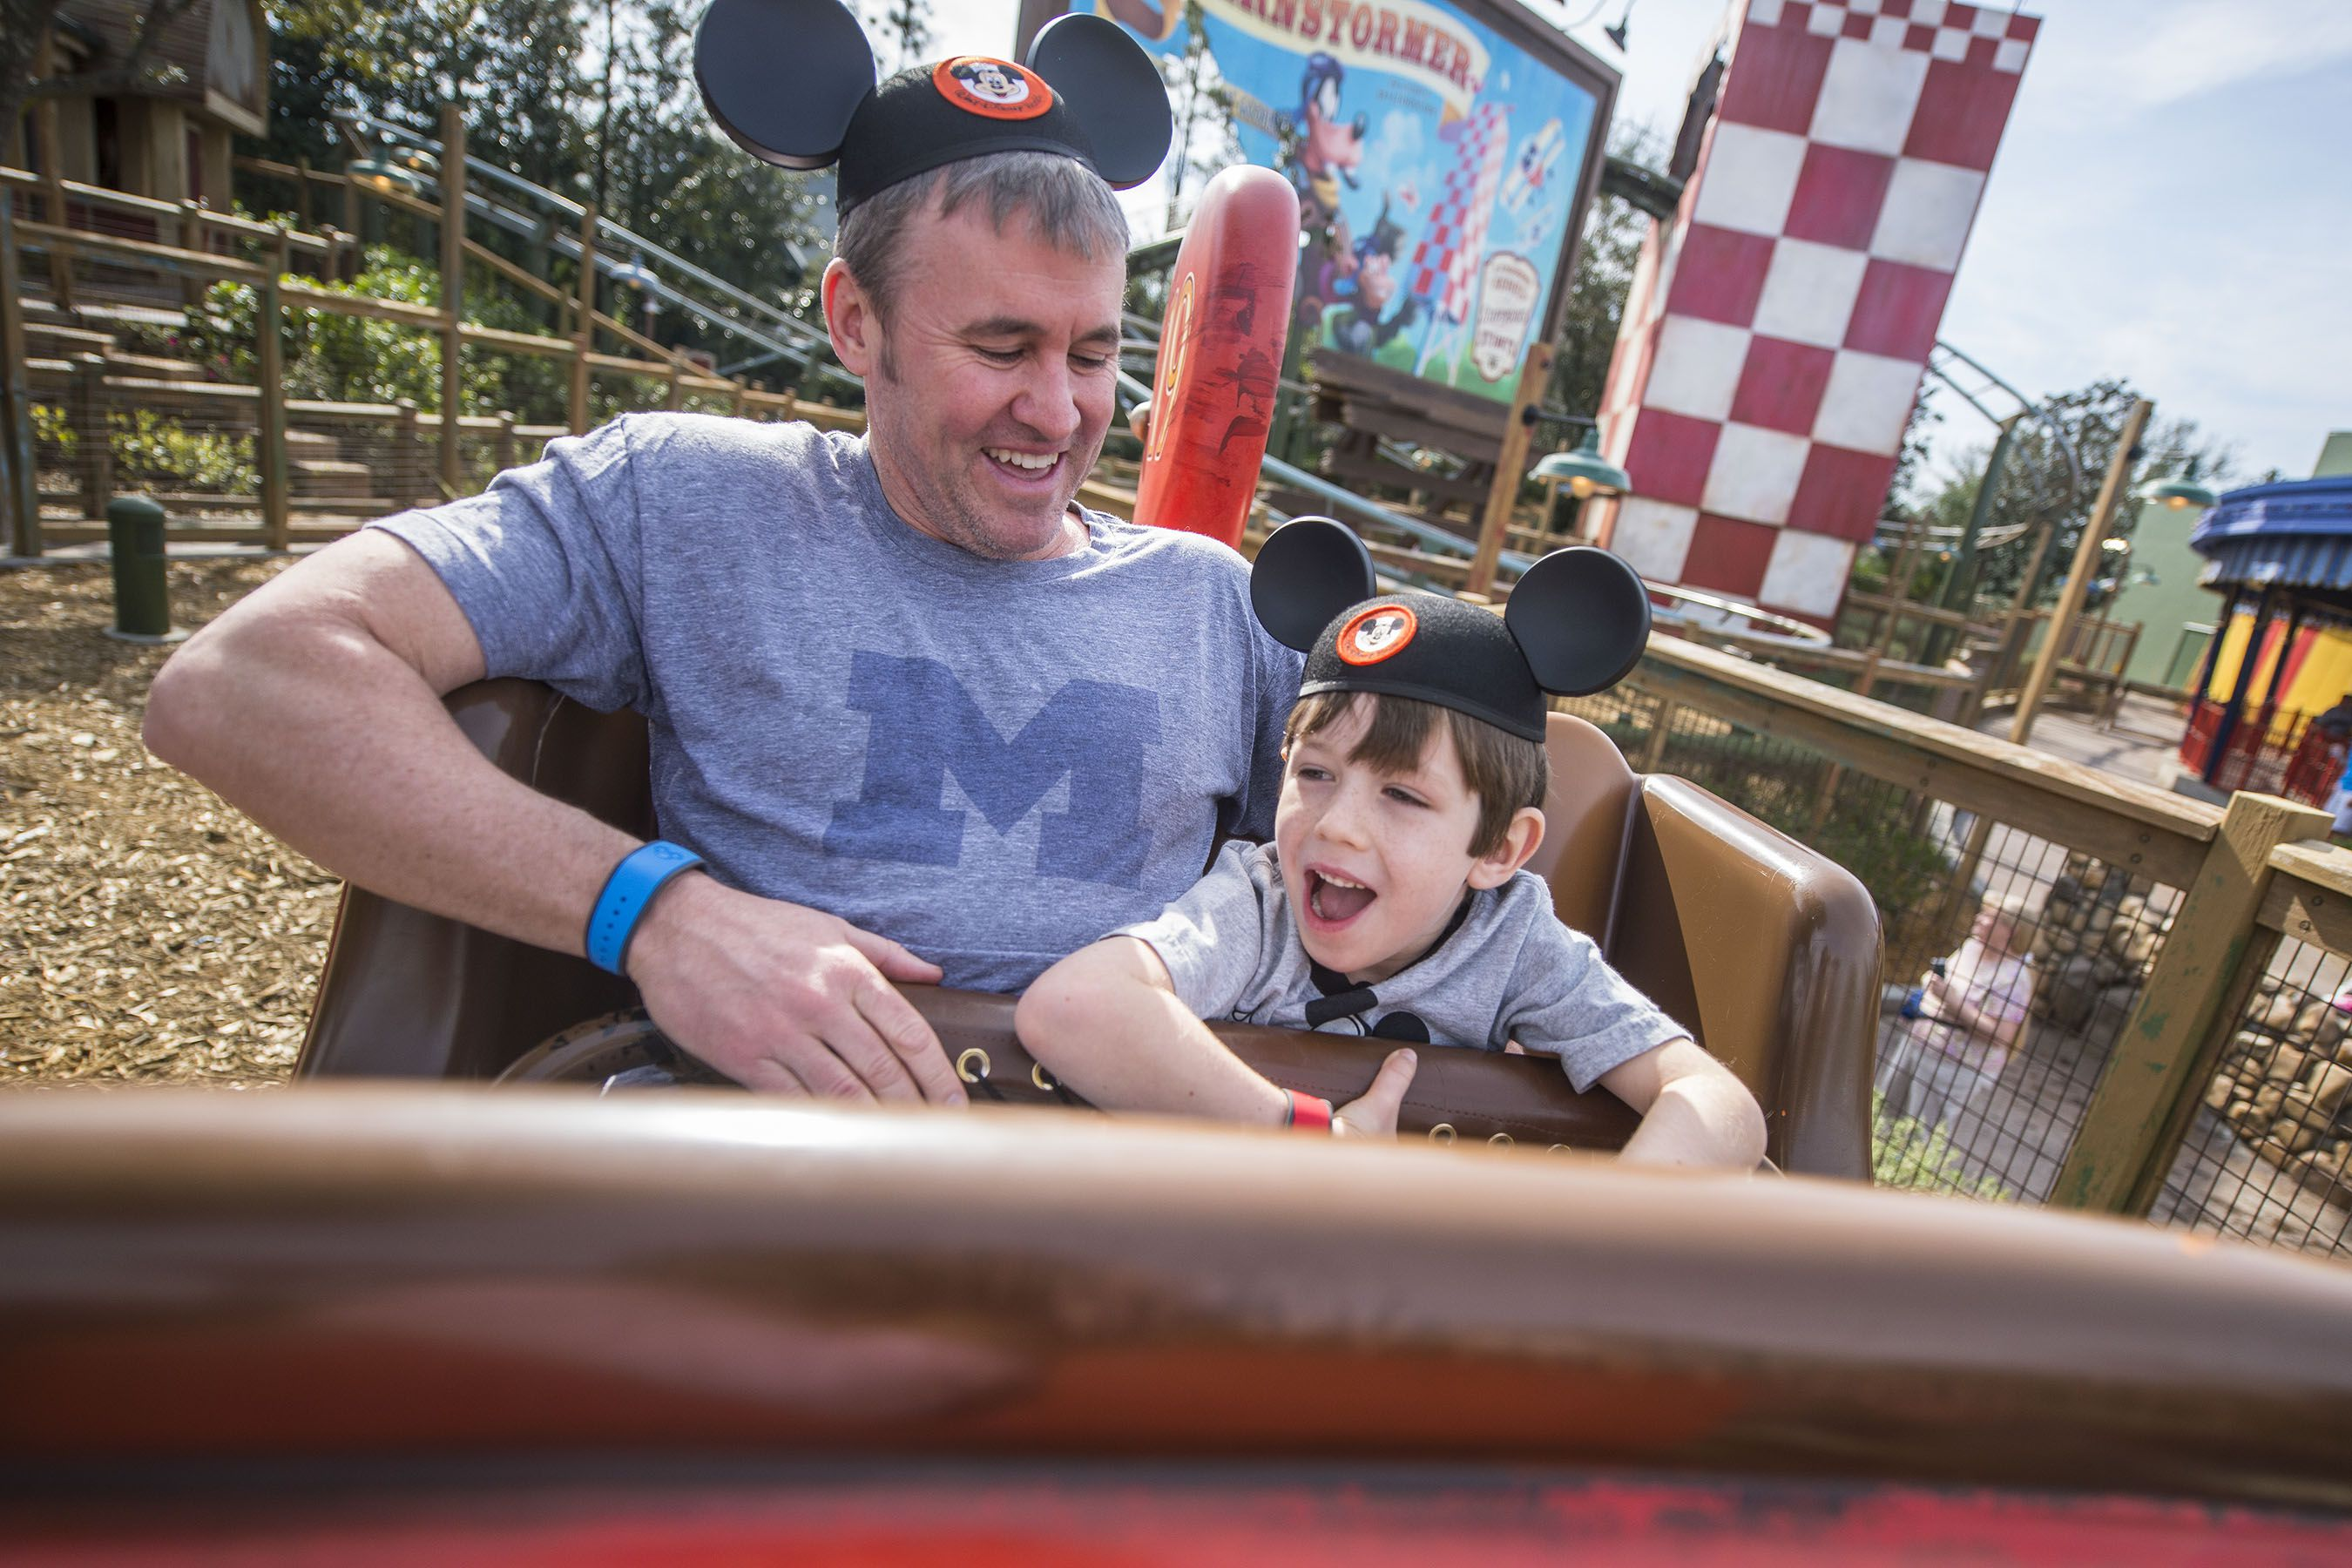 The Complete Guide to Disney World's Roller Coasters